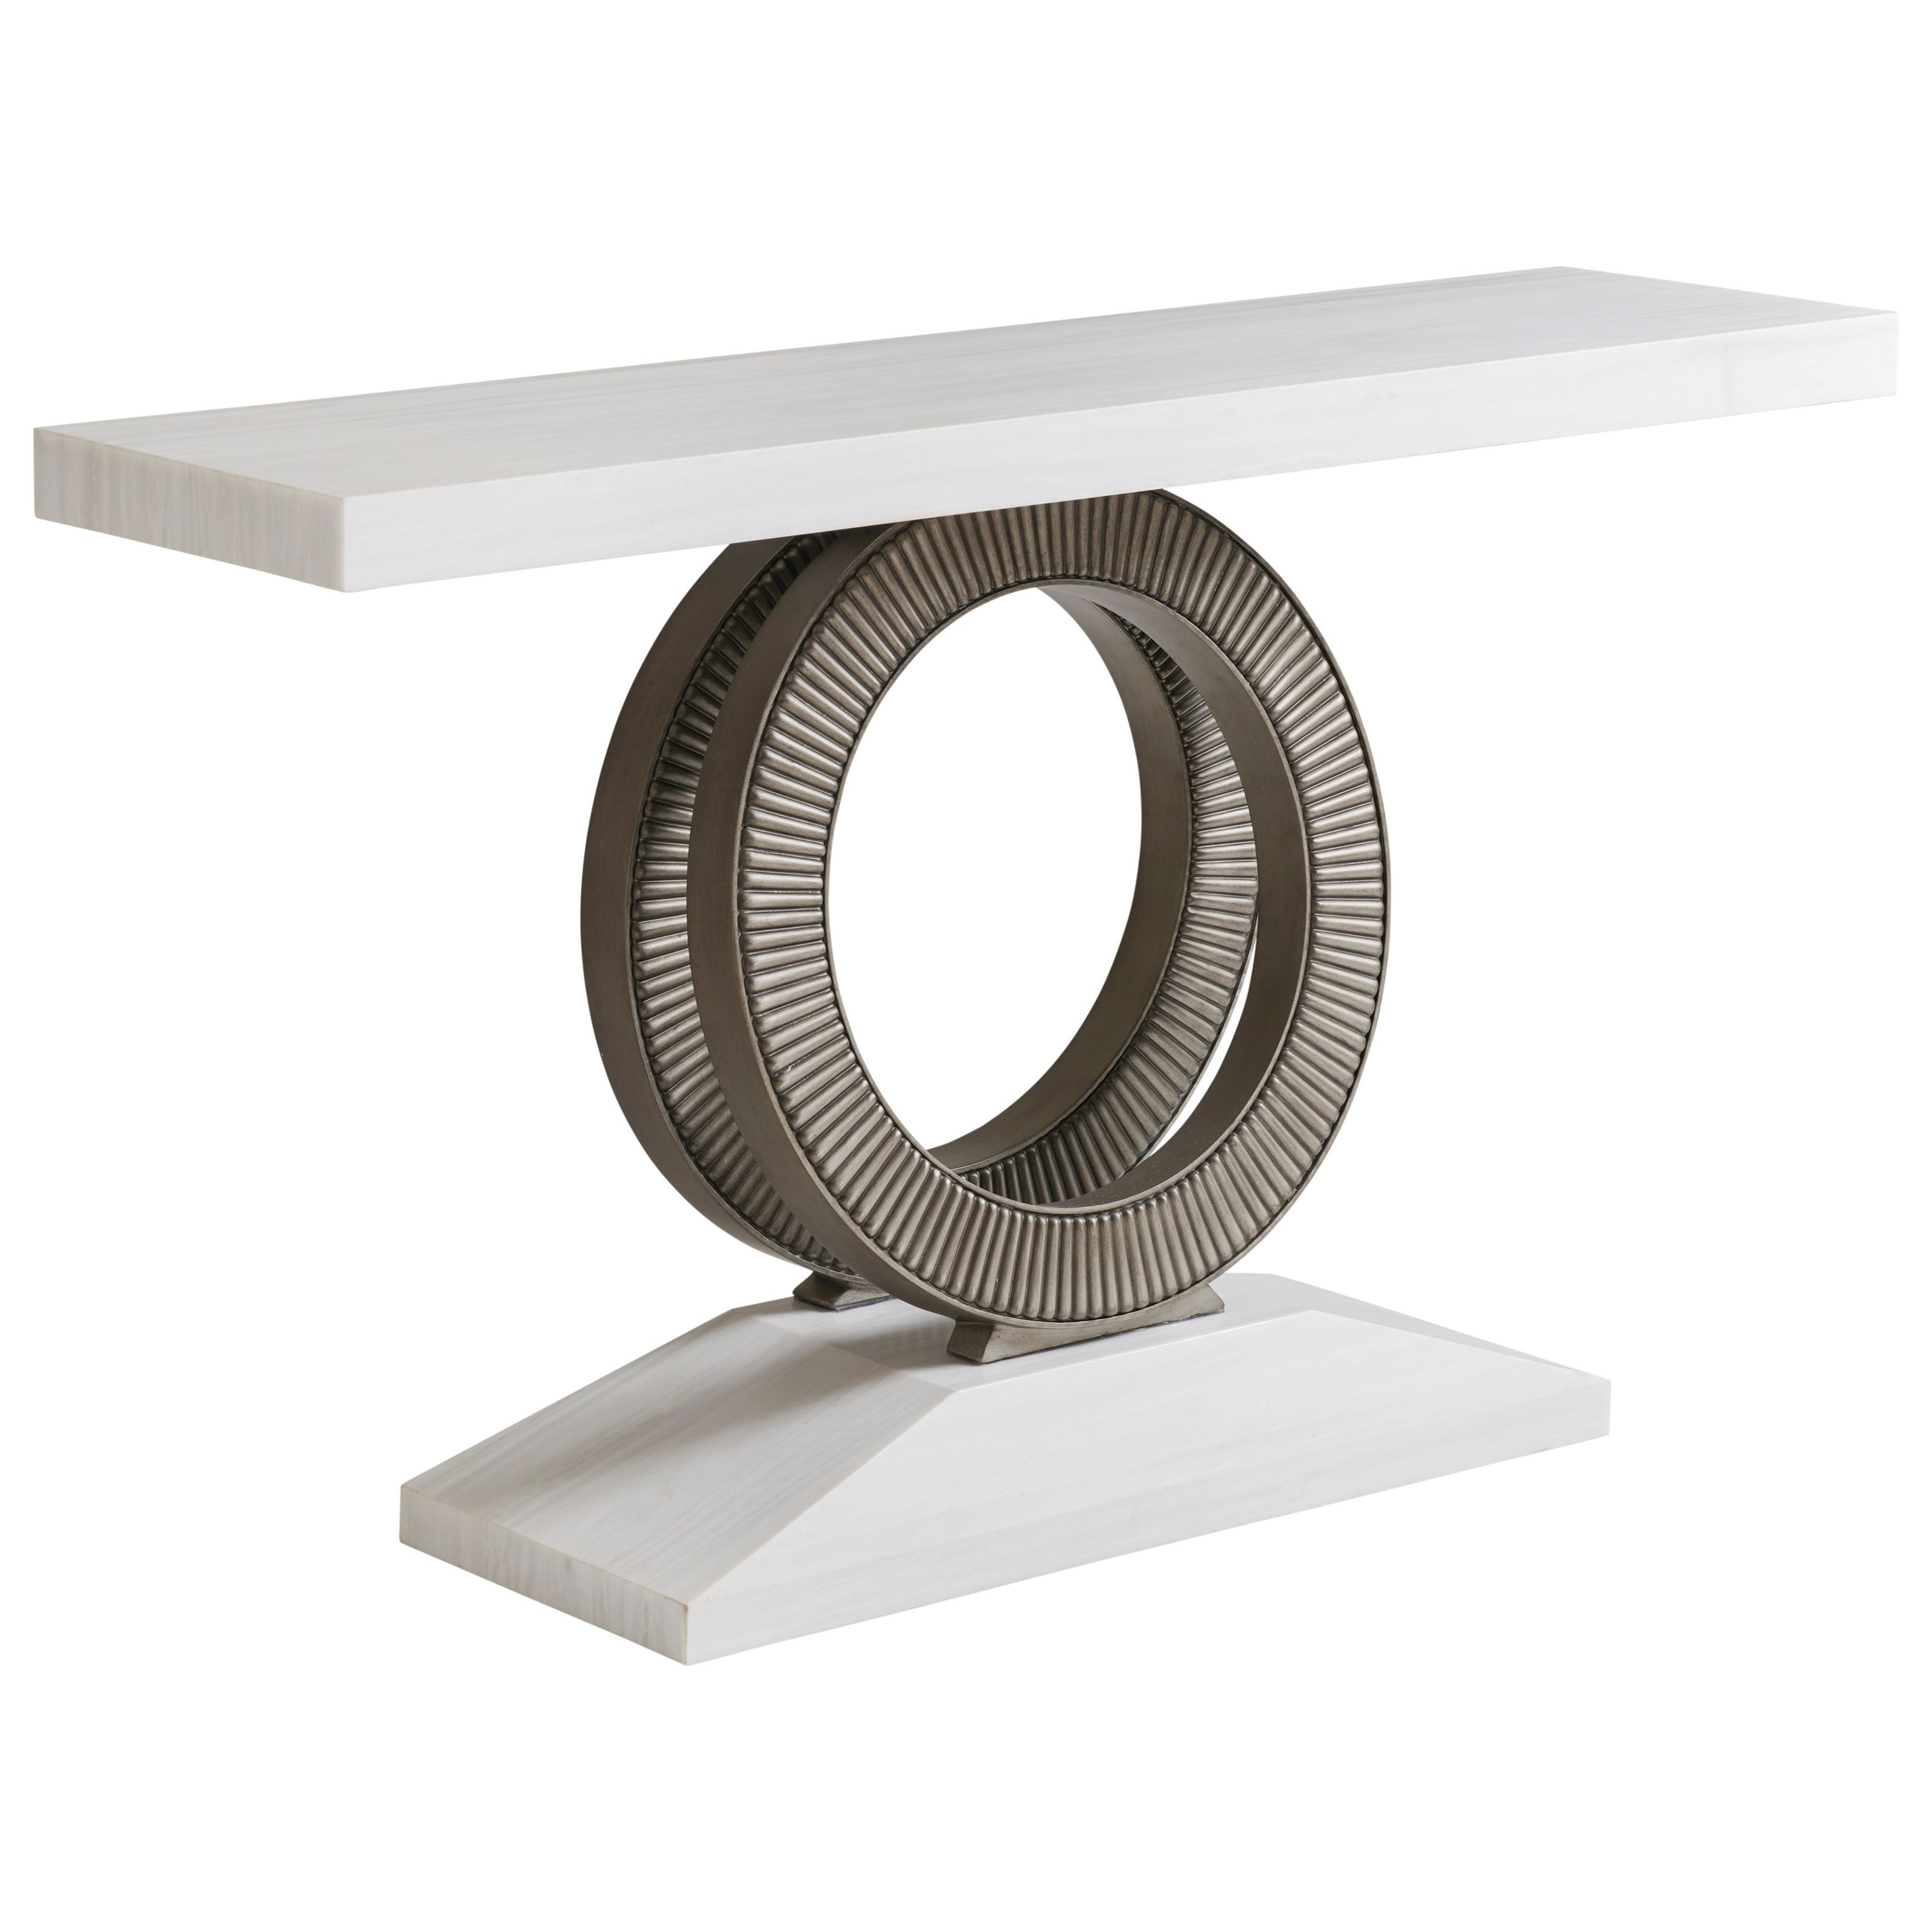 Ocean Breeze Wayfarer Stone Top Console by Tommy Bahama Home at Baer's Furniture